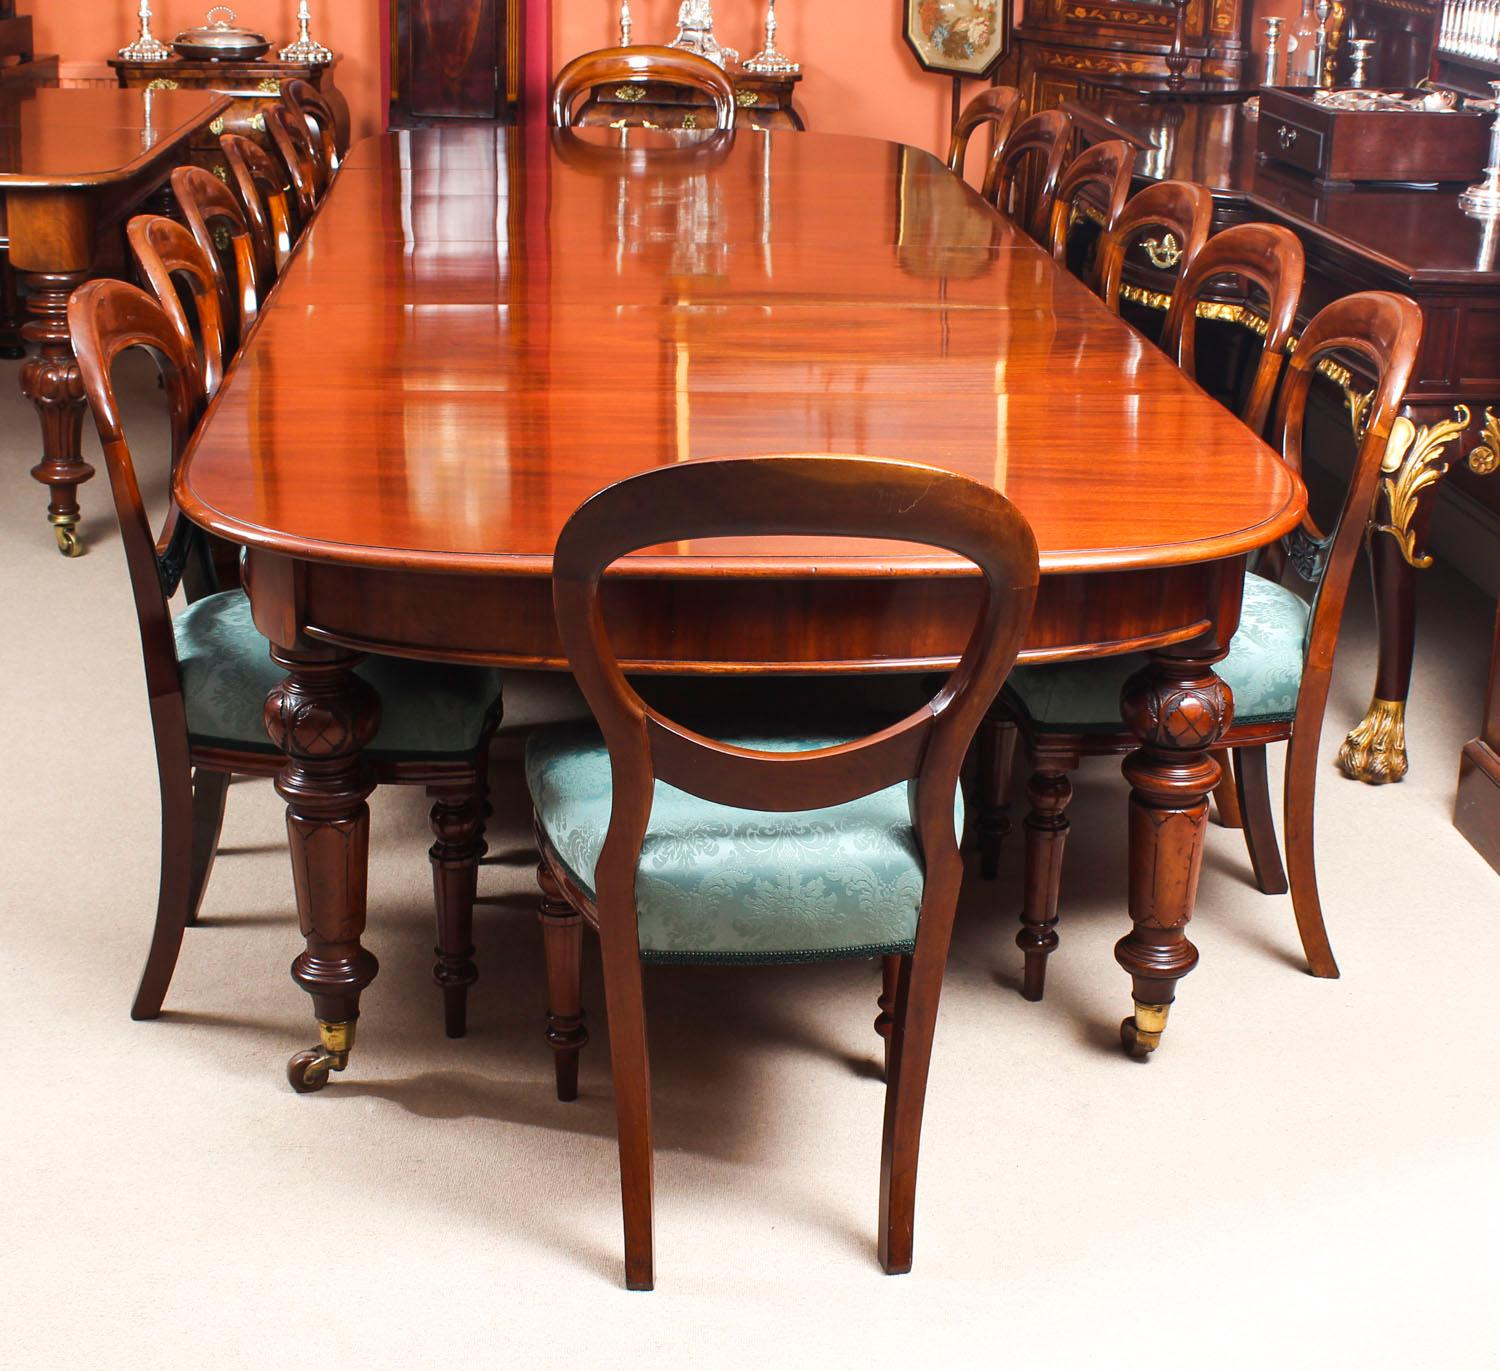 Antique 12 Ft Victorian D End Mahogany Dining Table And 14 Chairs 19th Century For At 1stdibs